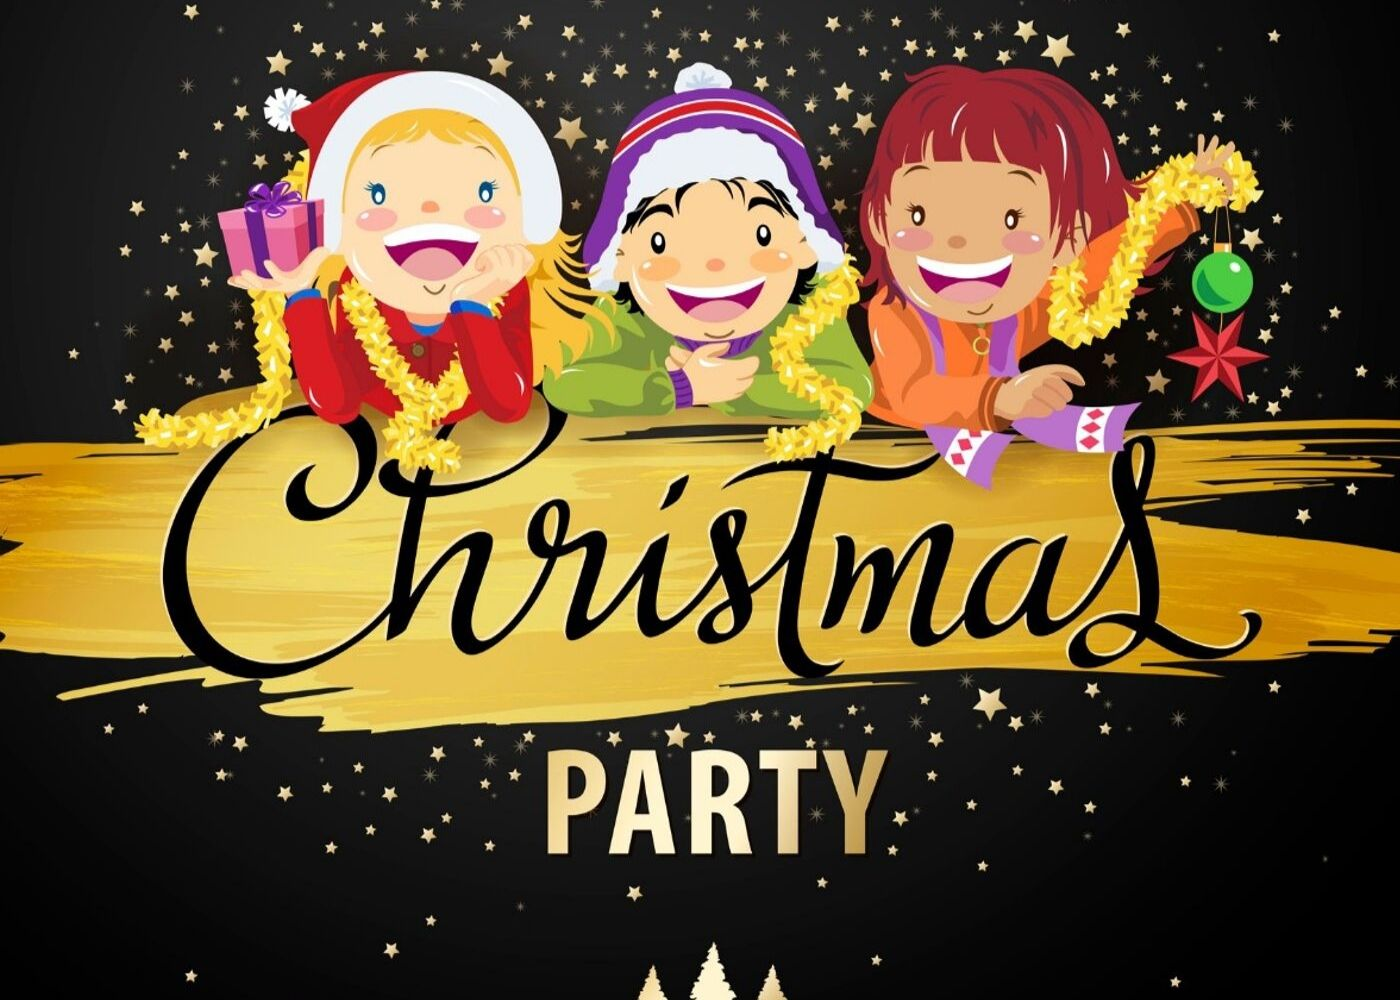 animated christmas party image of children wearing christmas clothes